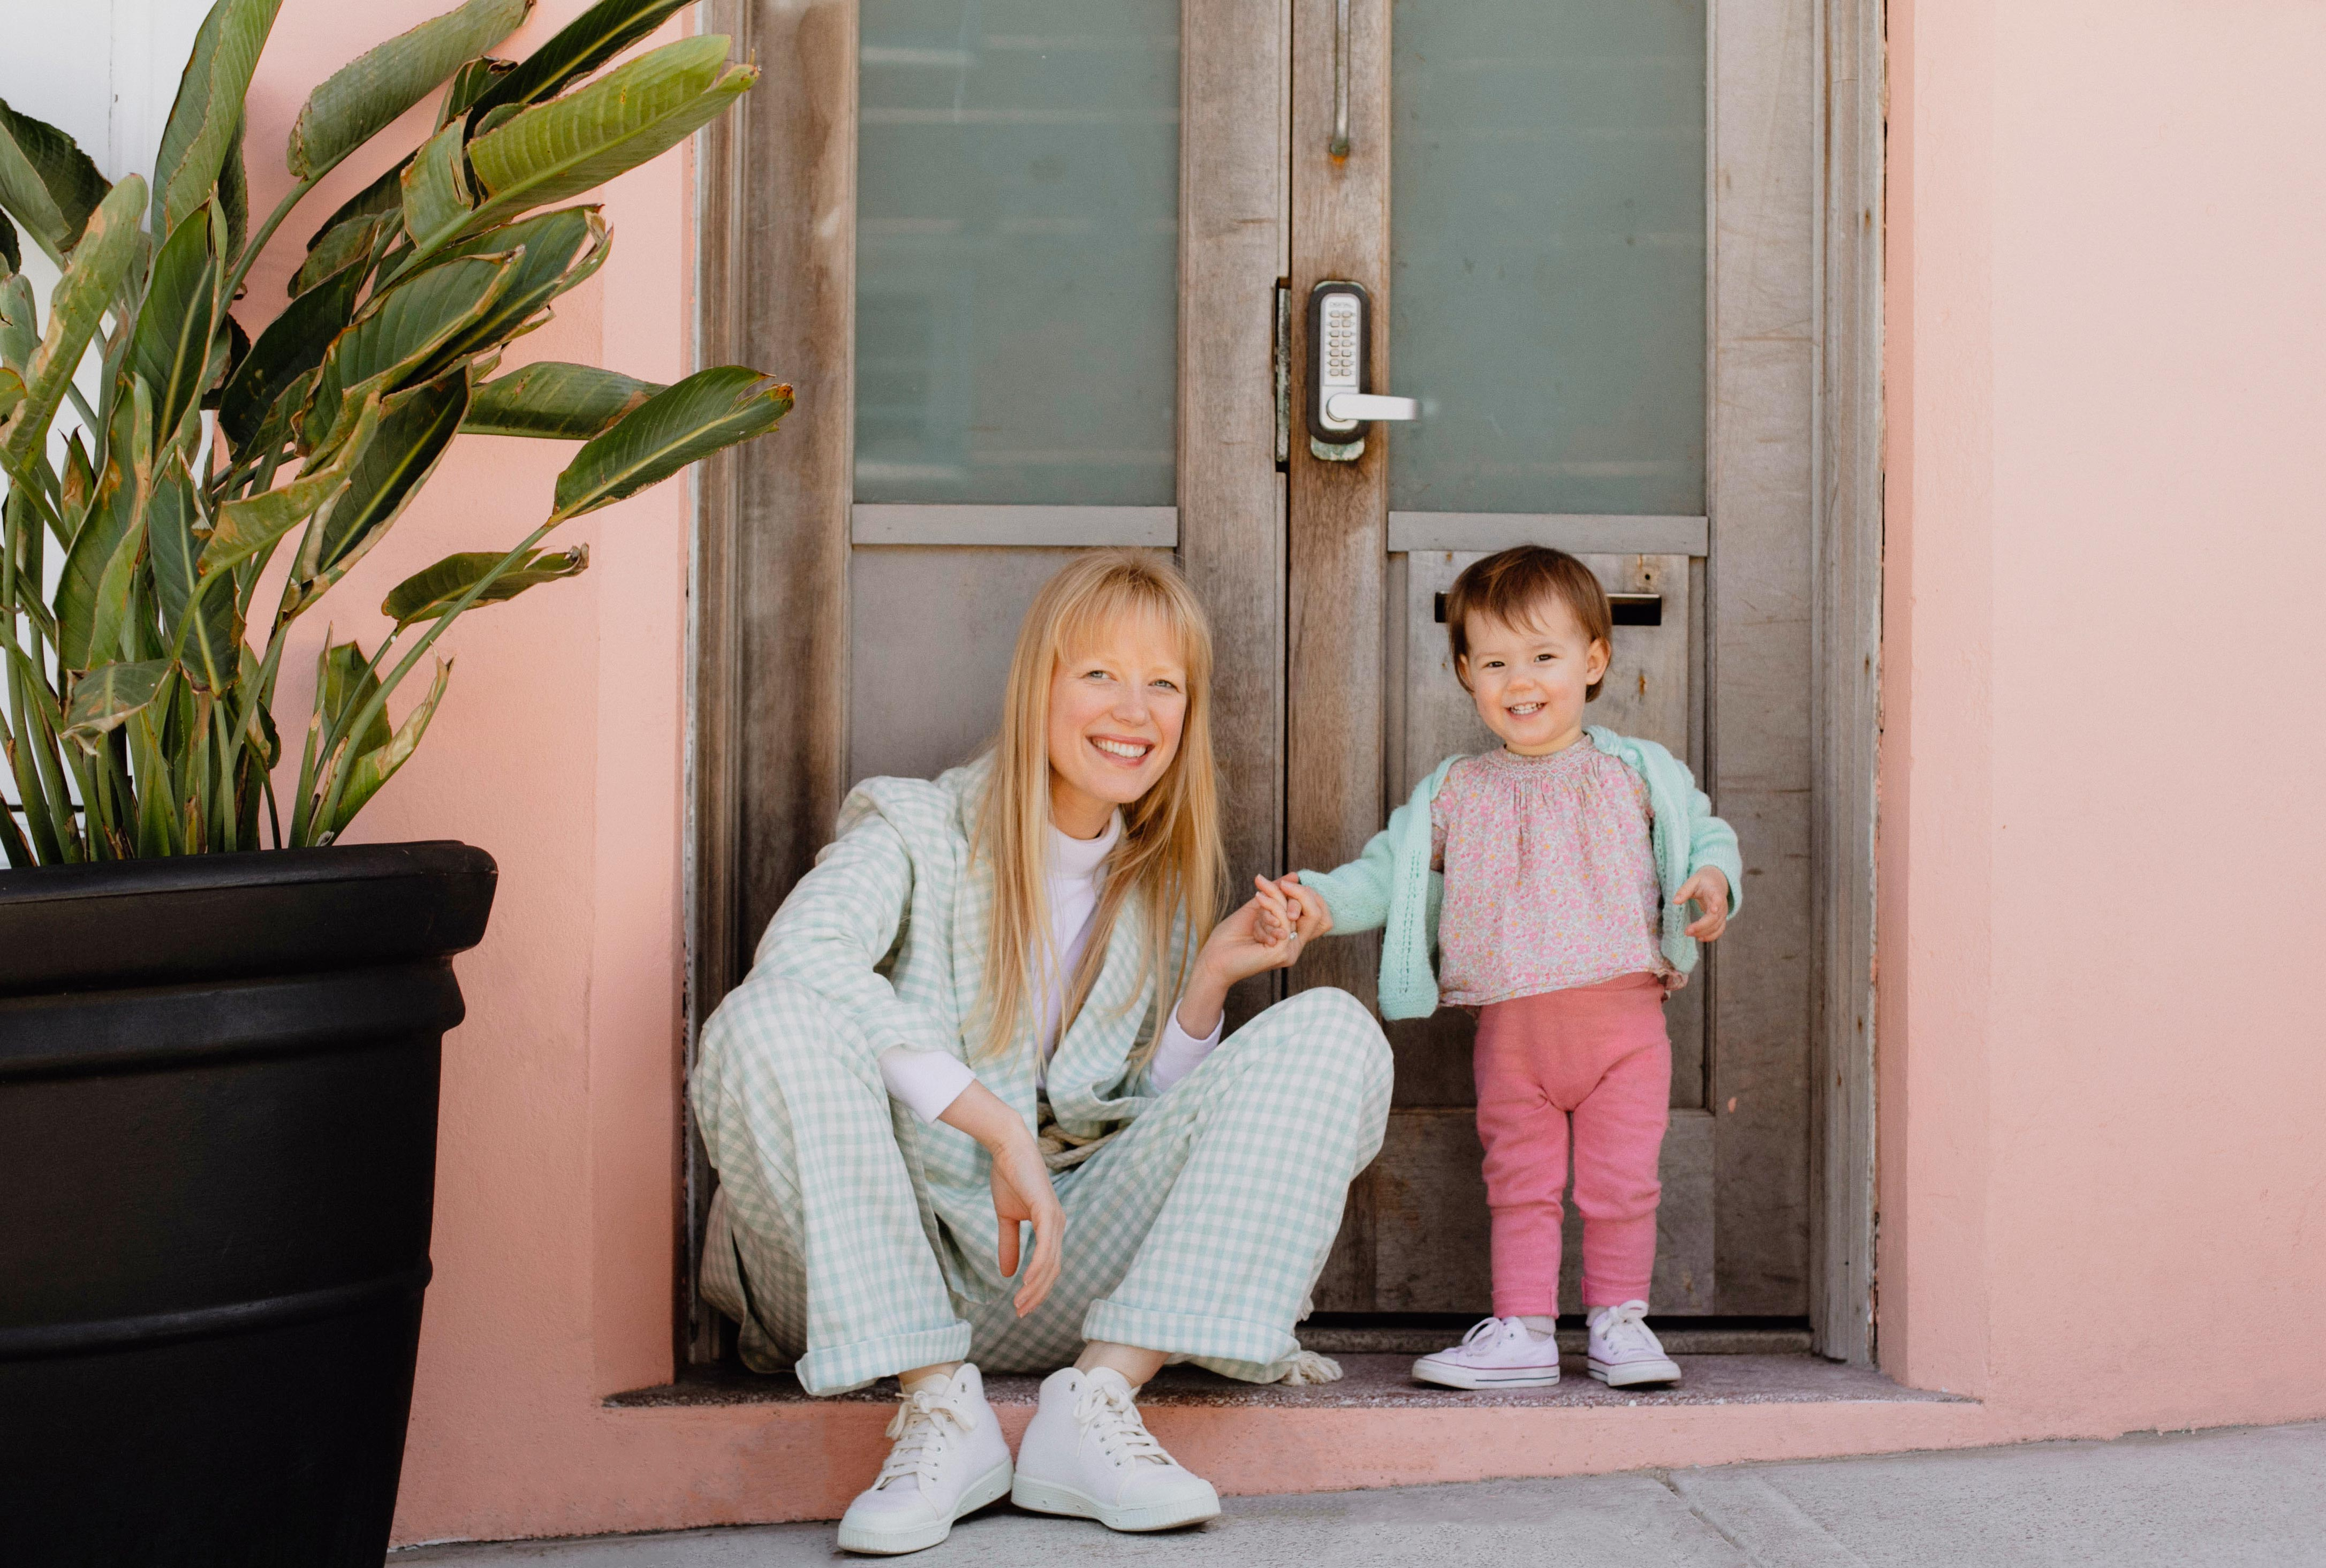 Stacey Cotter Manière on Creativity, Sustainability & Motherhood